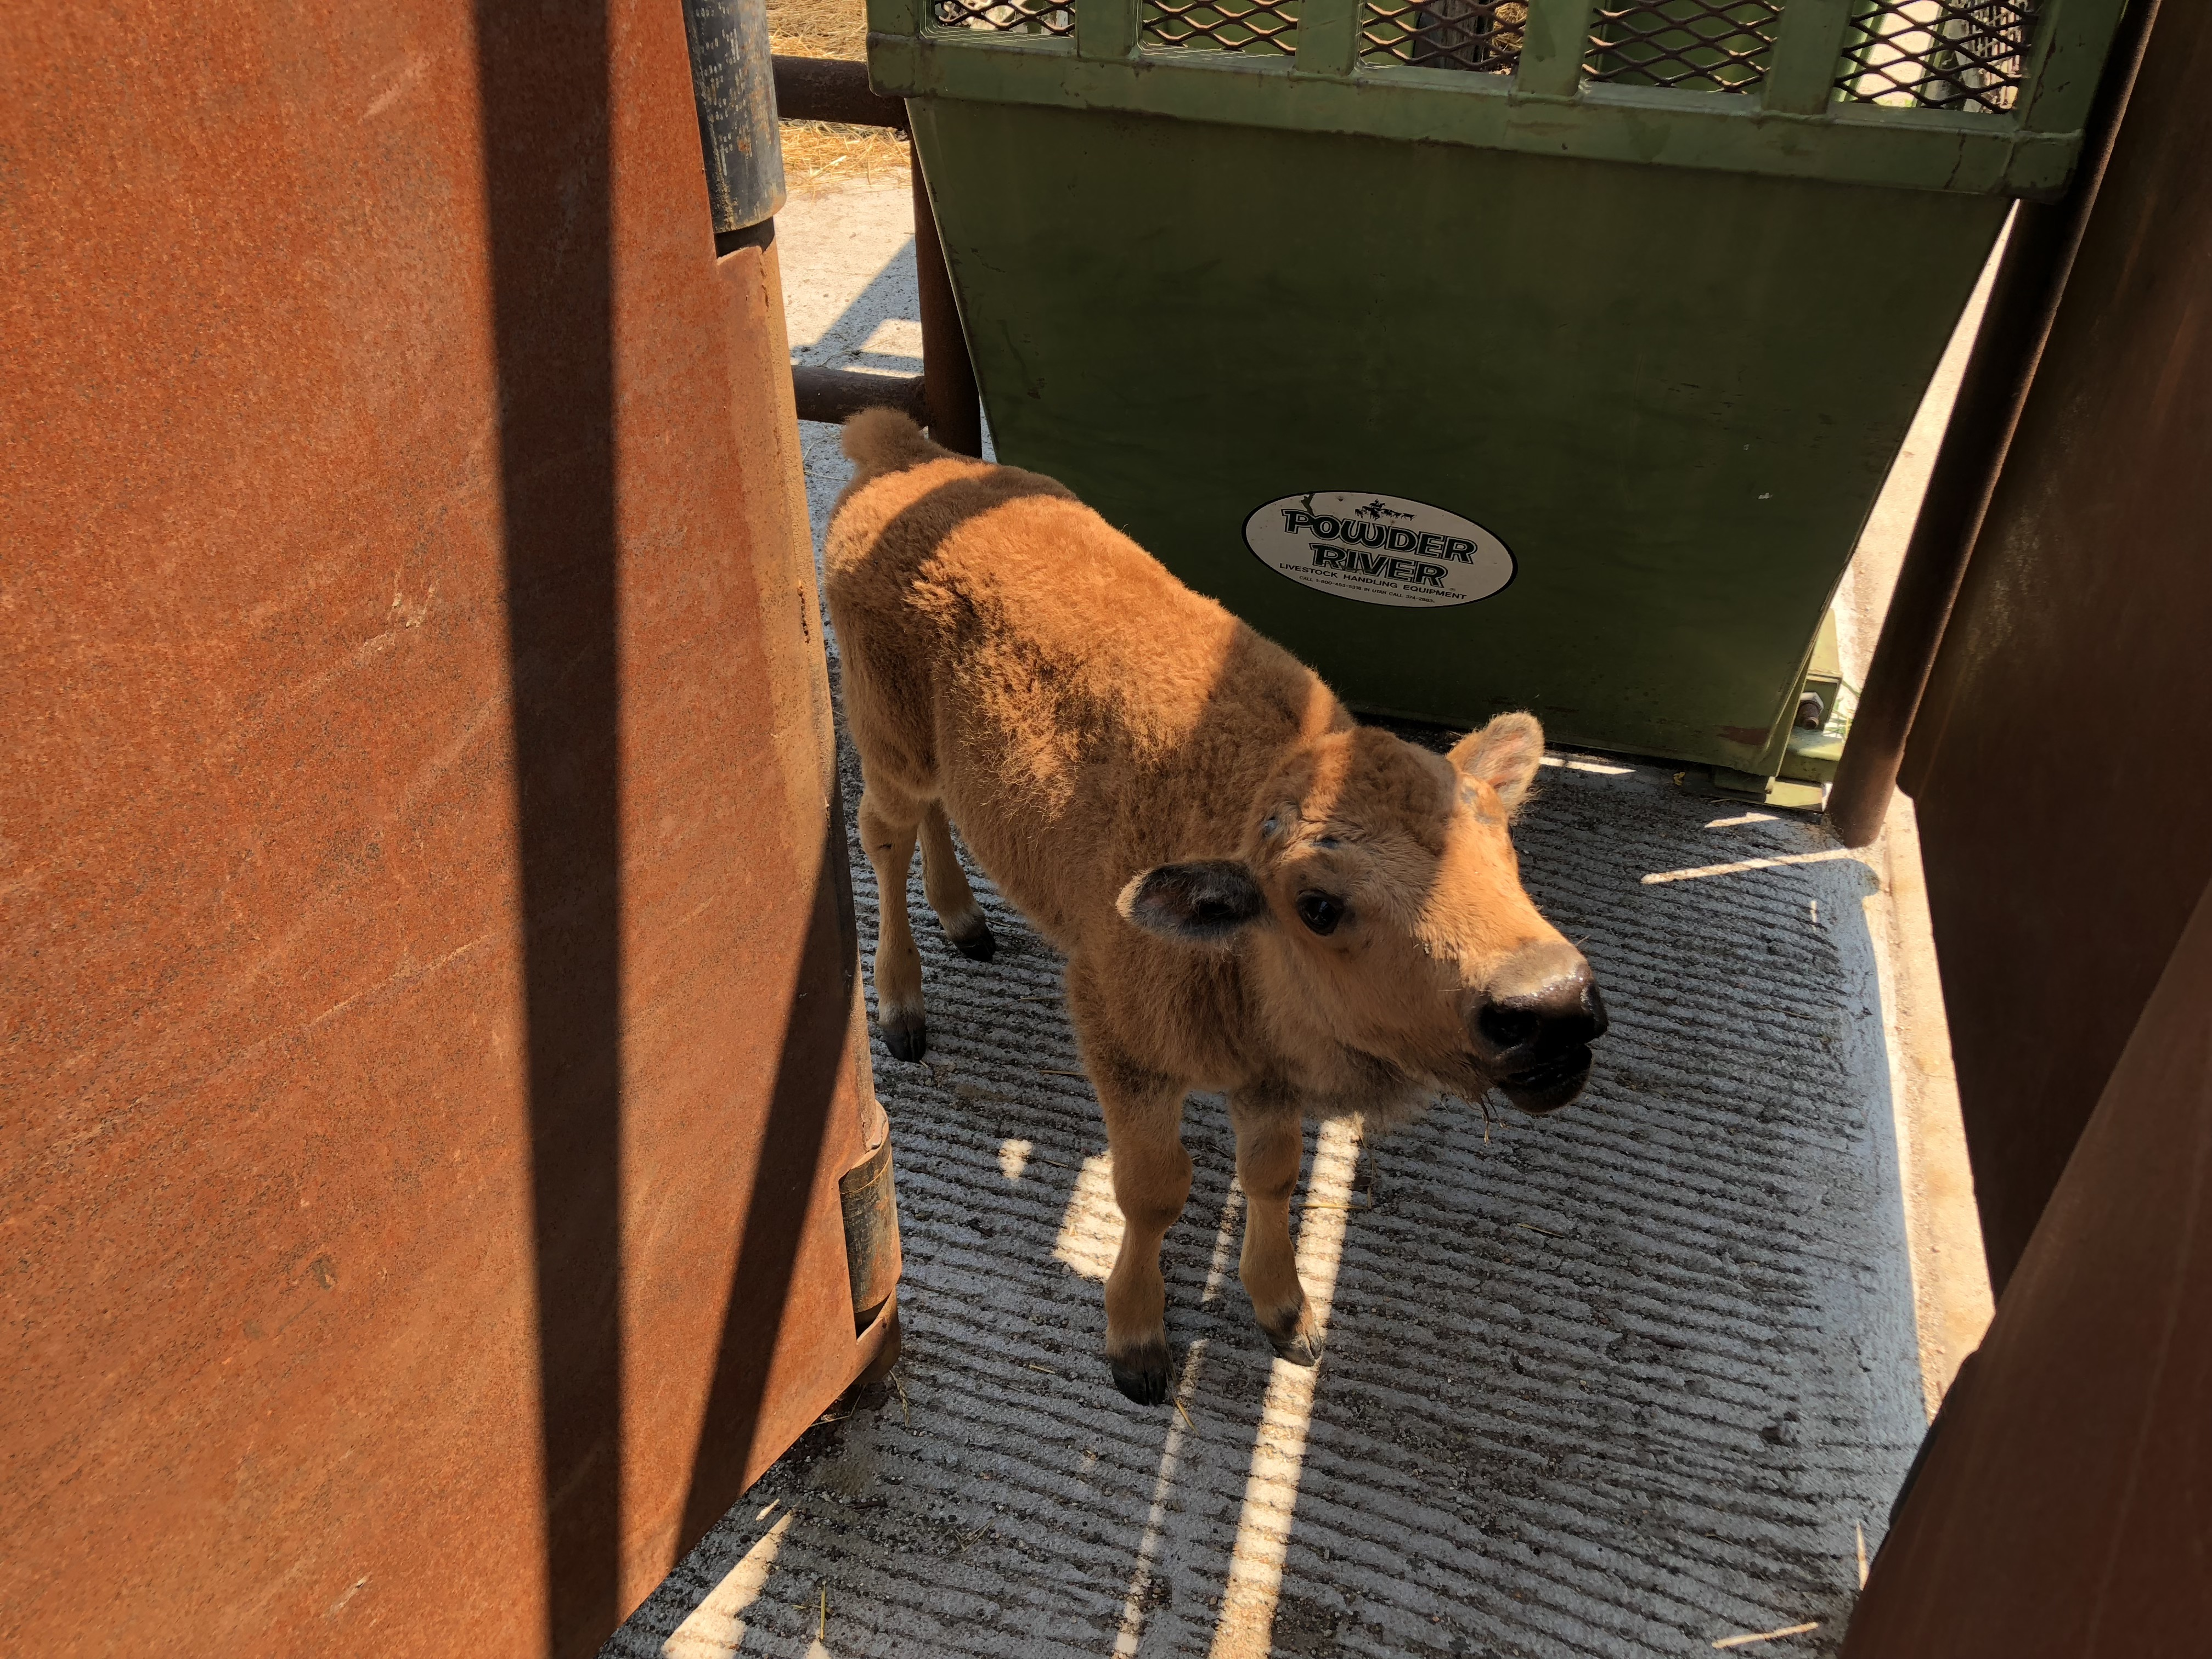 Baby Bison Gets a Chance at Survival